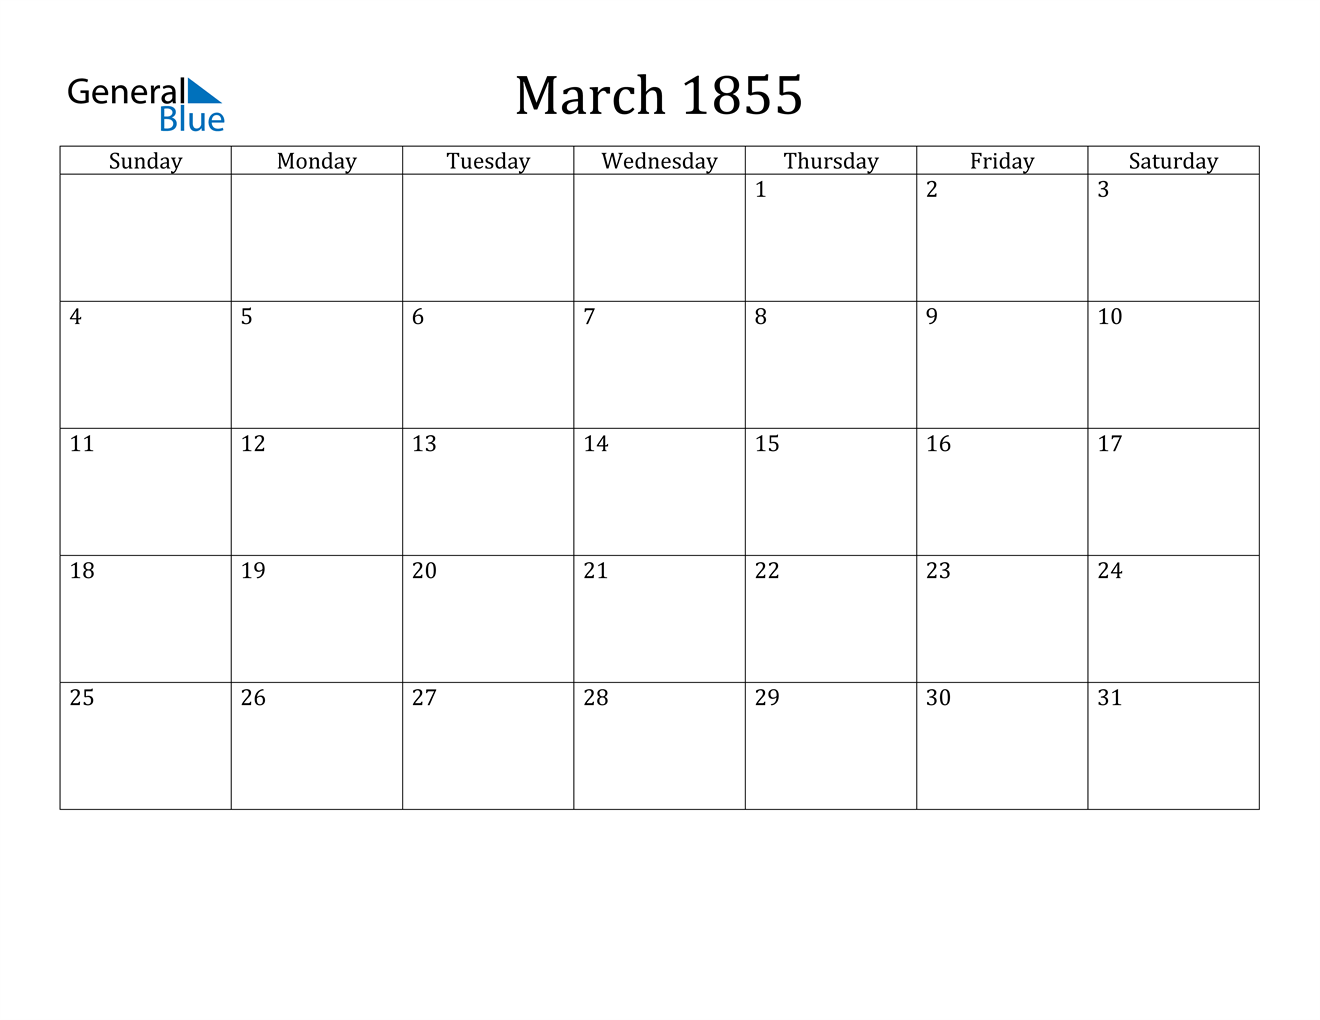 Image of March 1855 Calendar